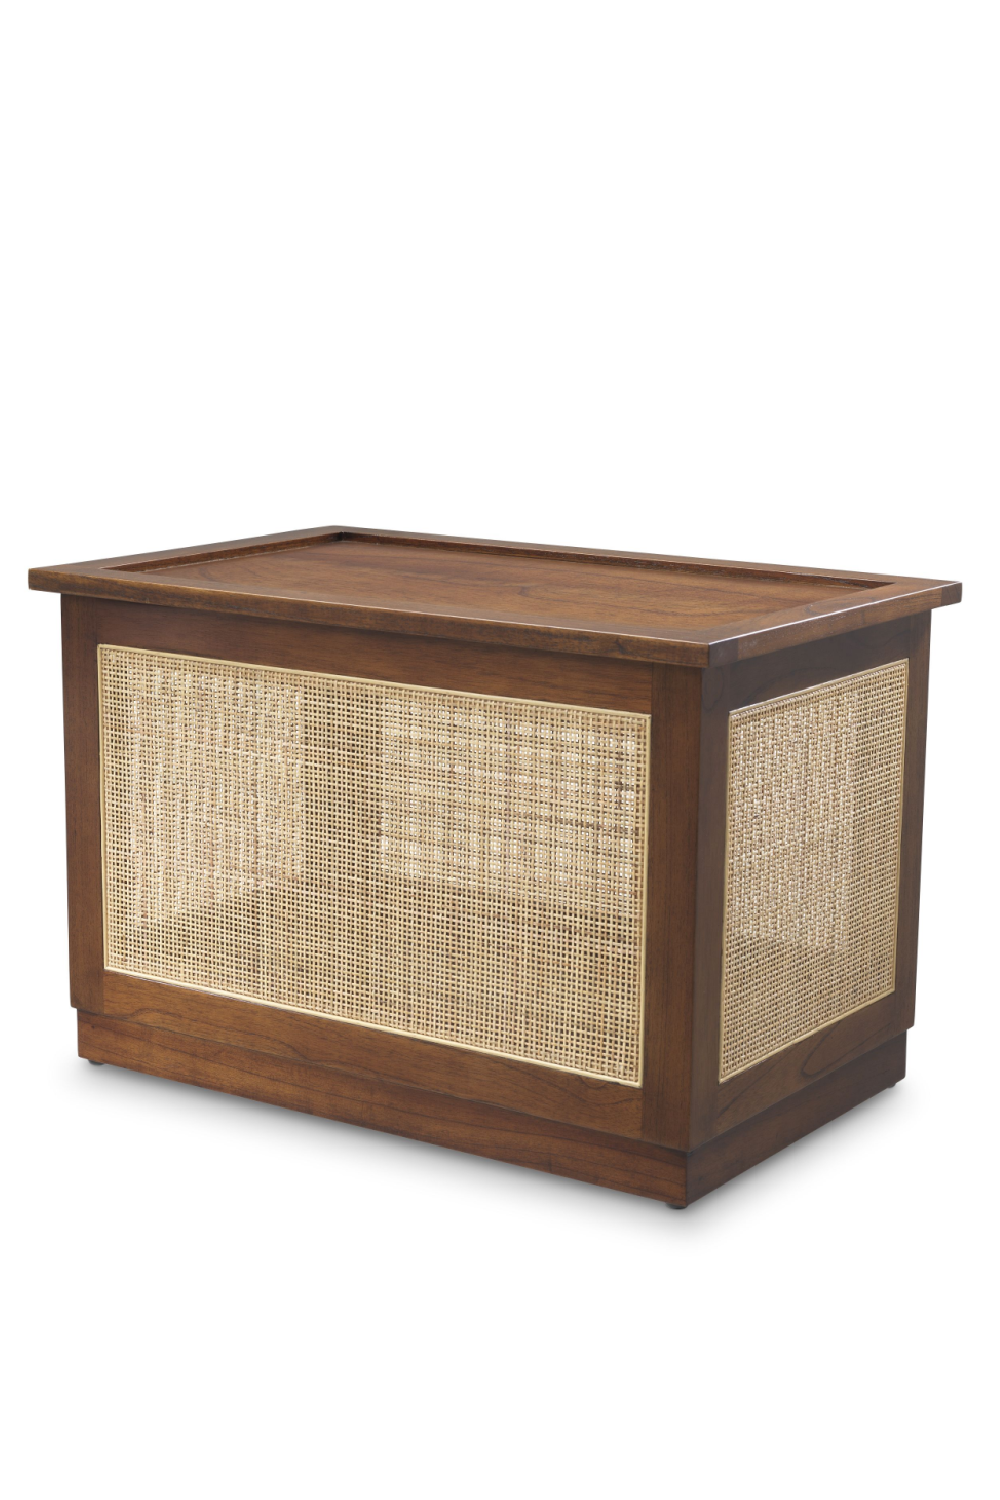 Brown Rattan Cane Trunk | Eichholtz Philbert | Woodfurniture.com